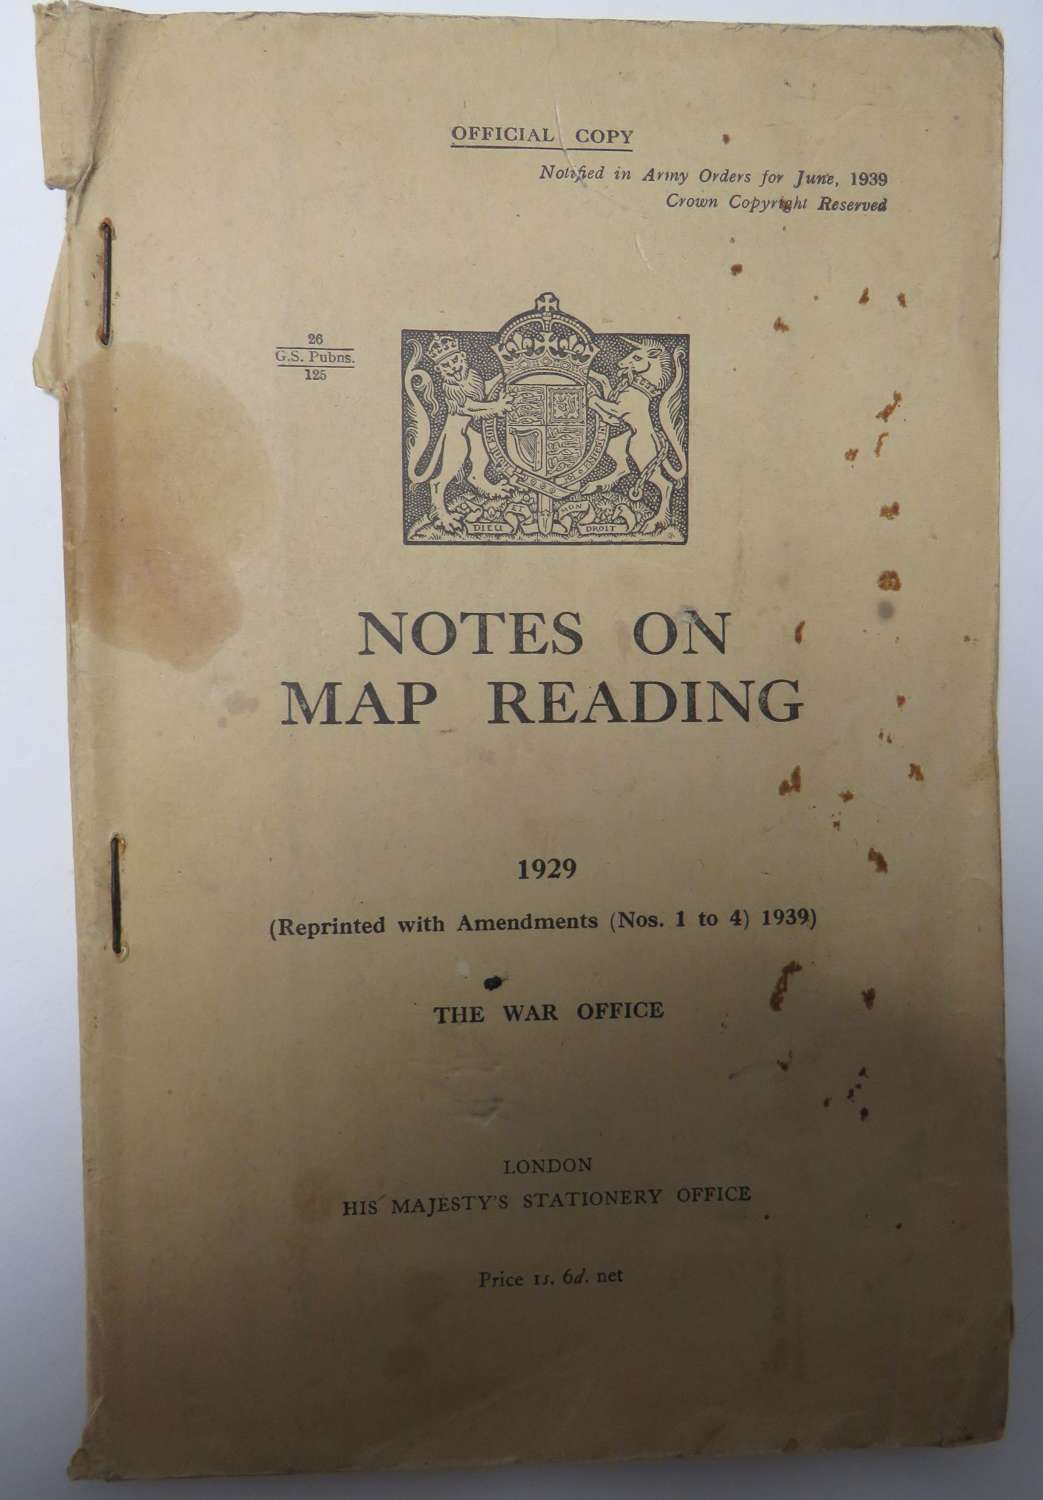 1929 Manual on Map Reading